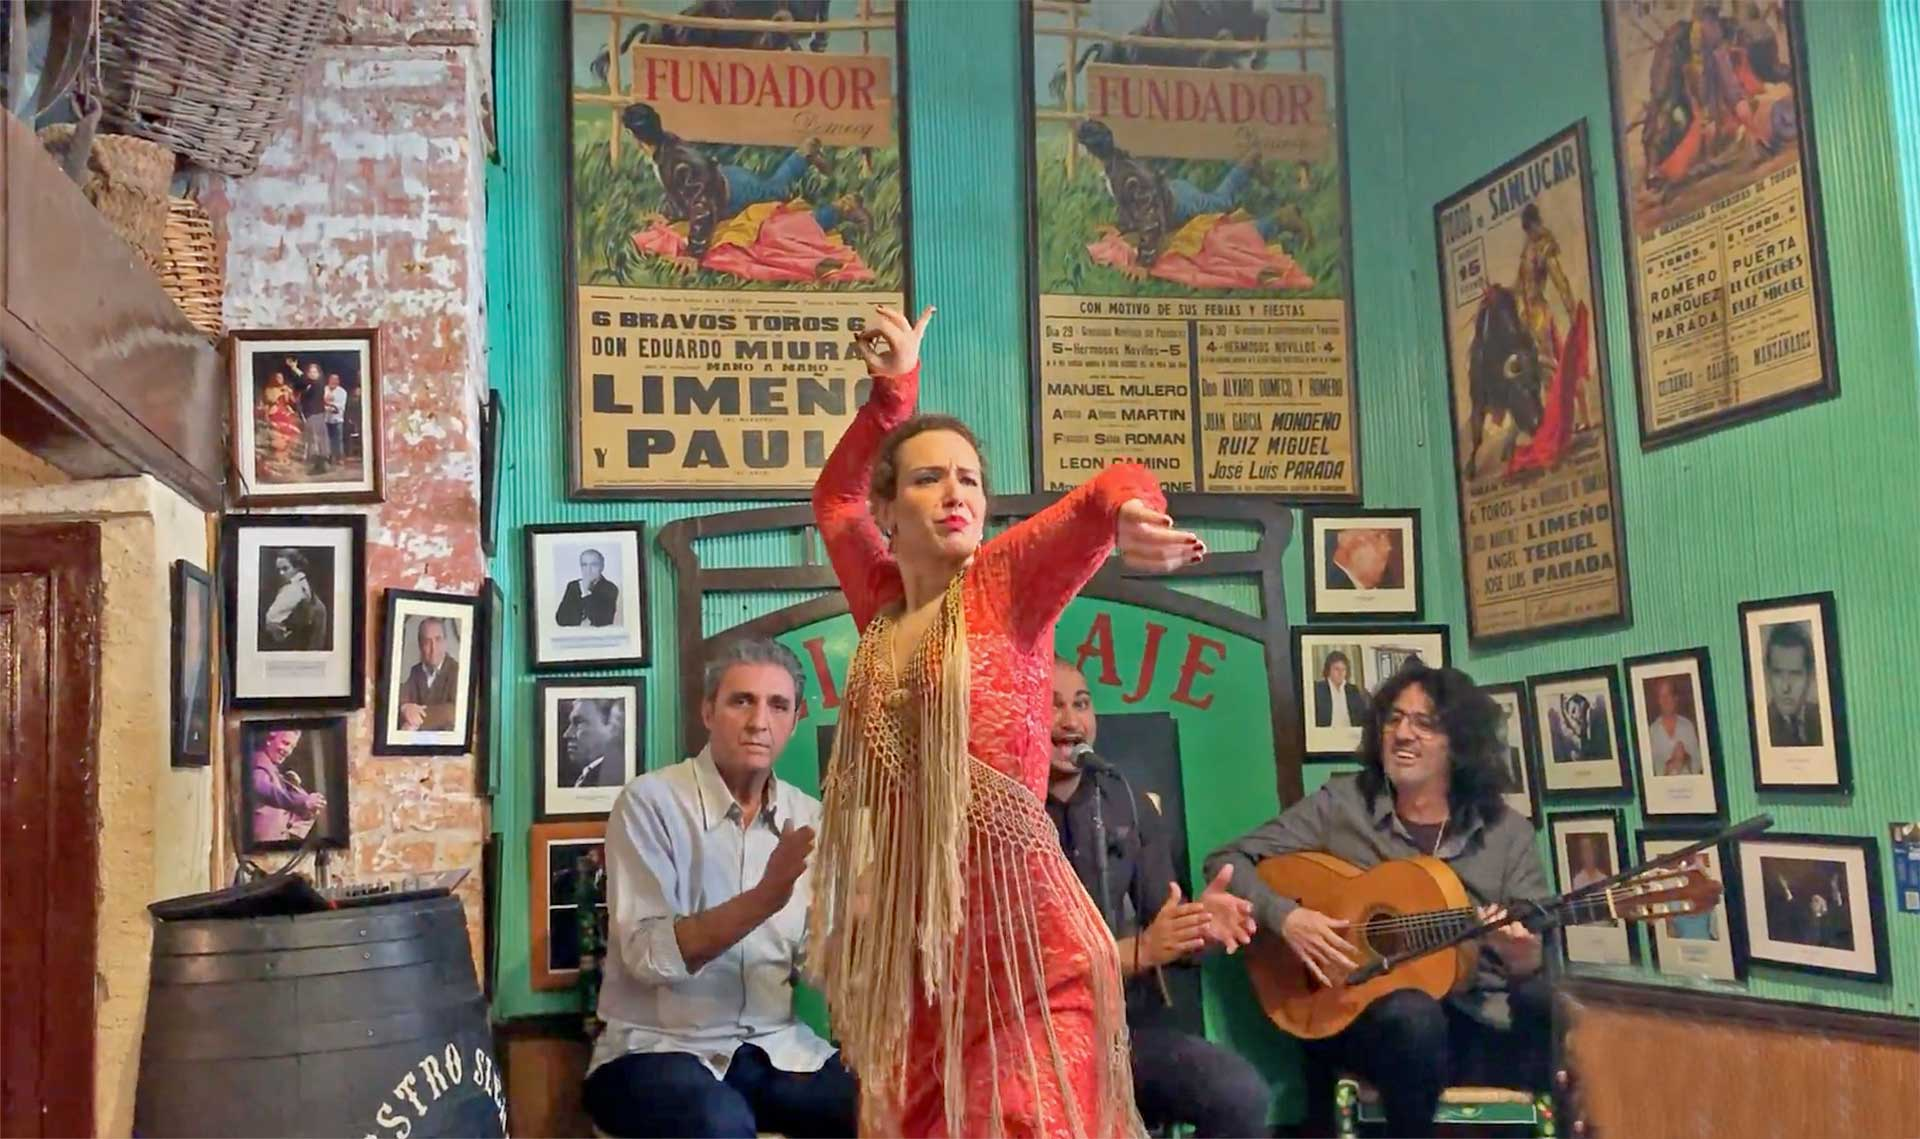 Tabancos Tour Jerez What is a Tabanco? Come to Jerez and enjoy unique bars with sherry and flamenco, by Paladar y Tomar